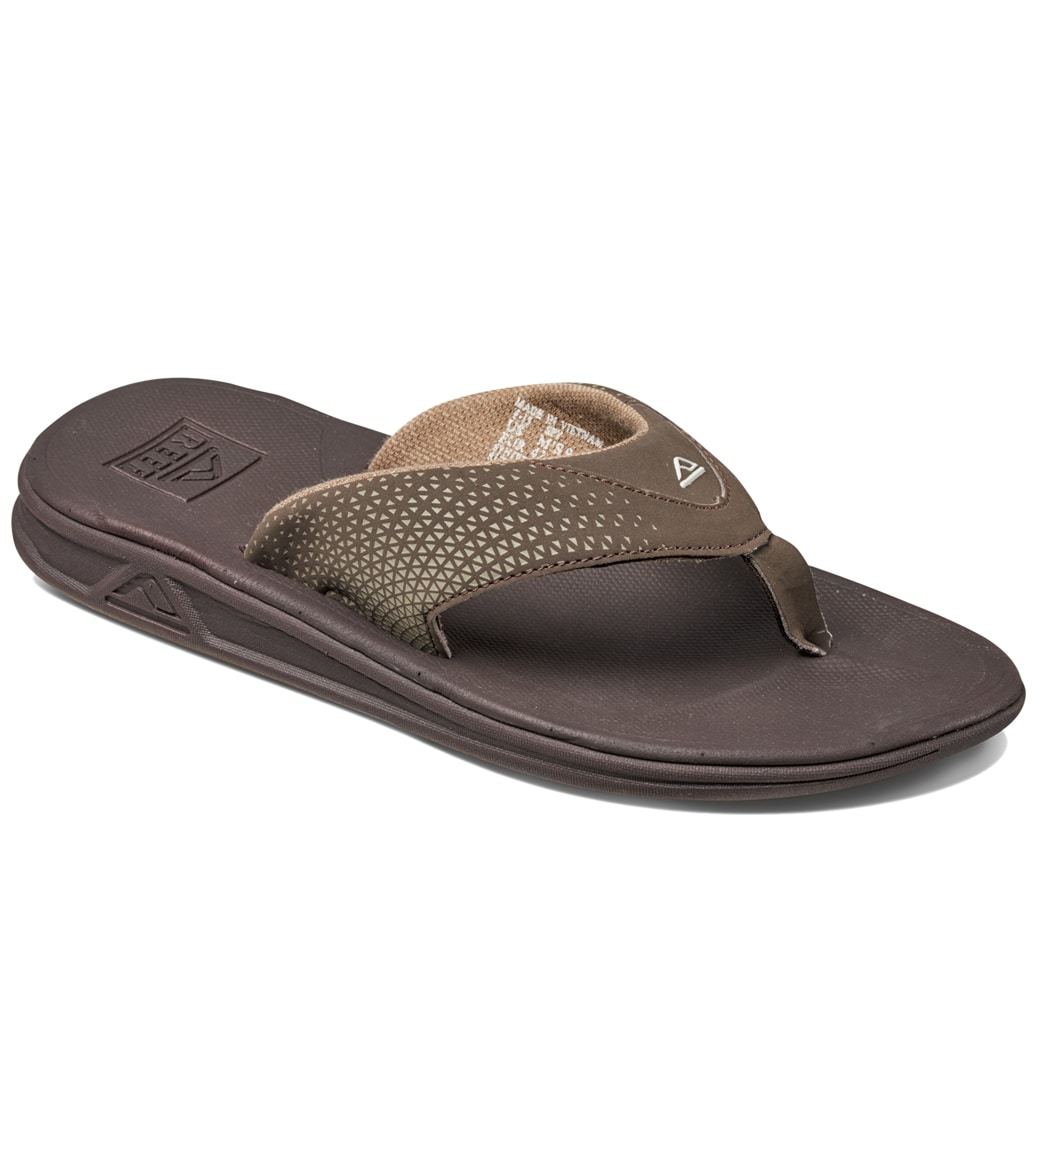 261c544e59b5 Reef Men s Rover Flip Flop at SwimOutlet.com